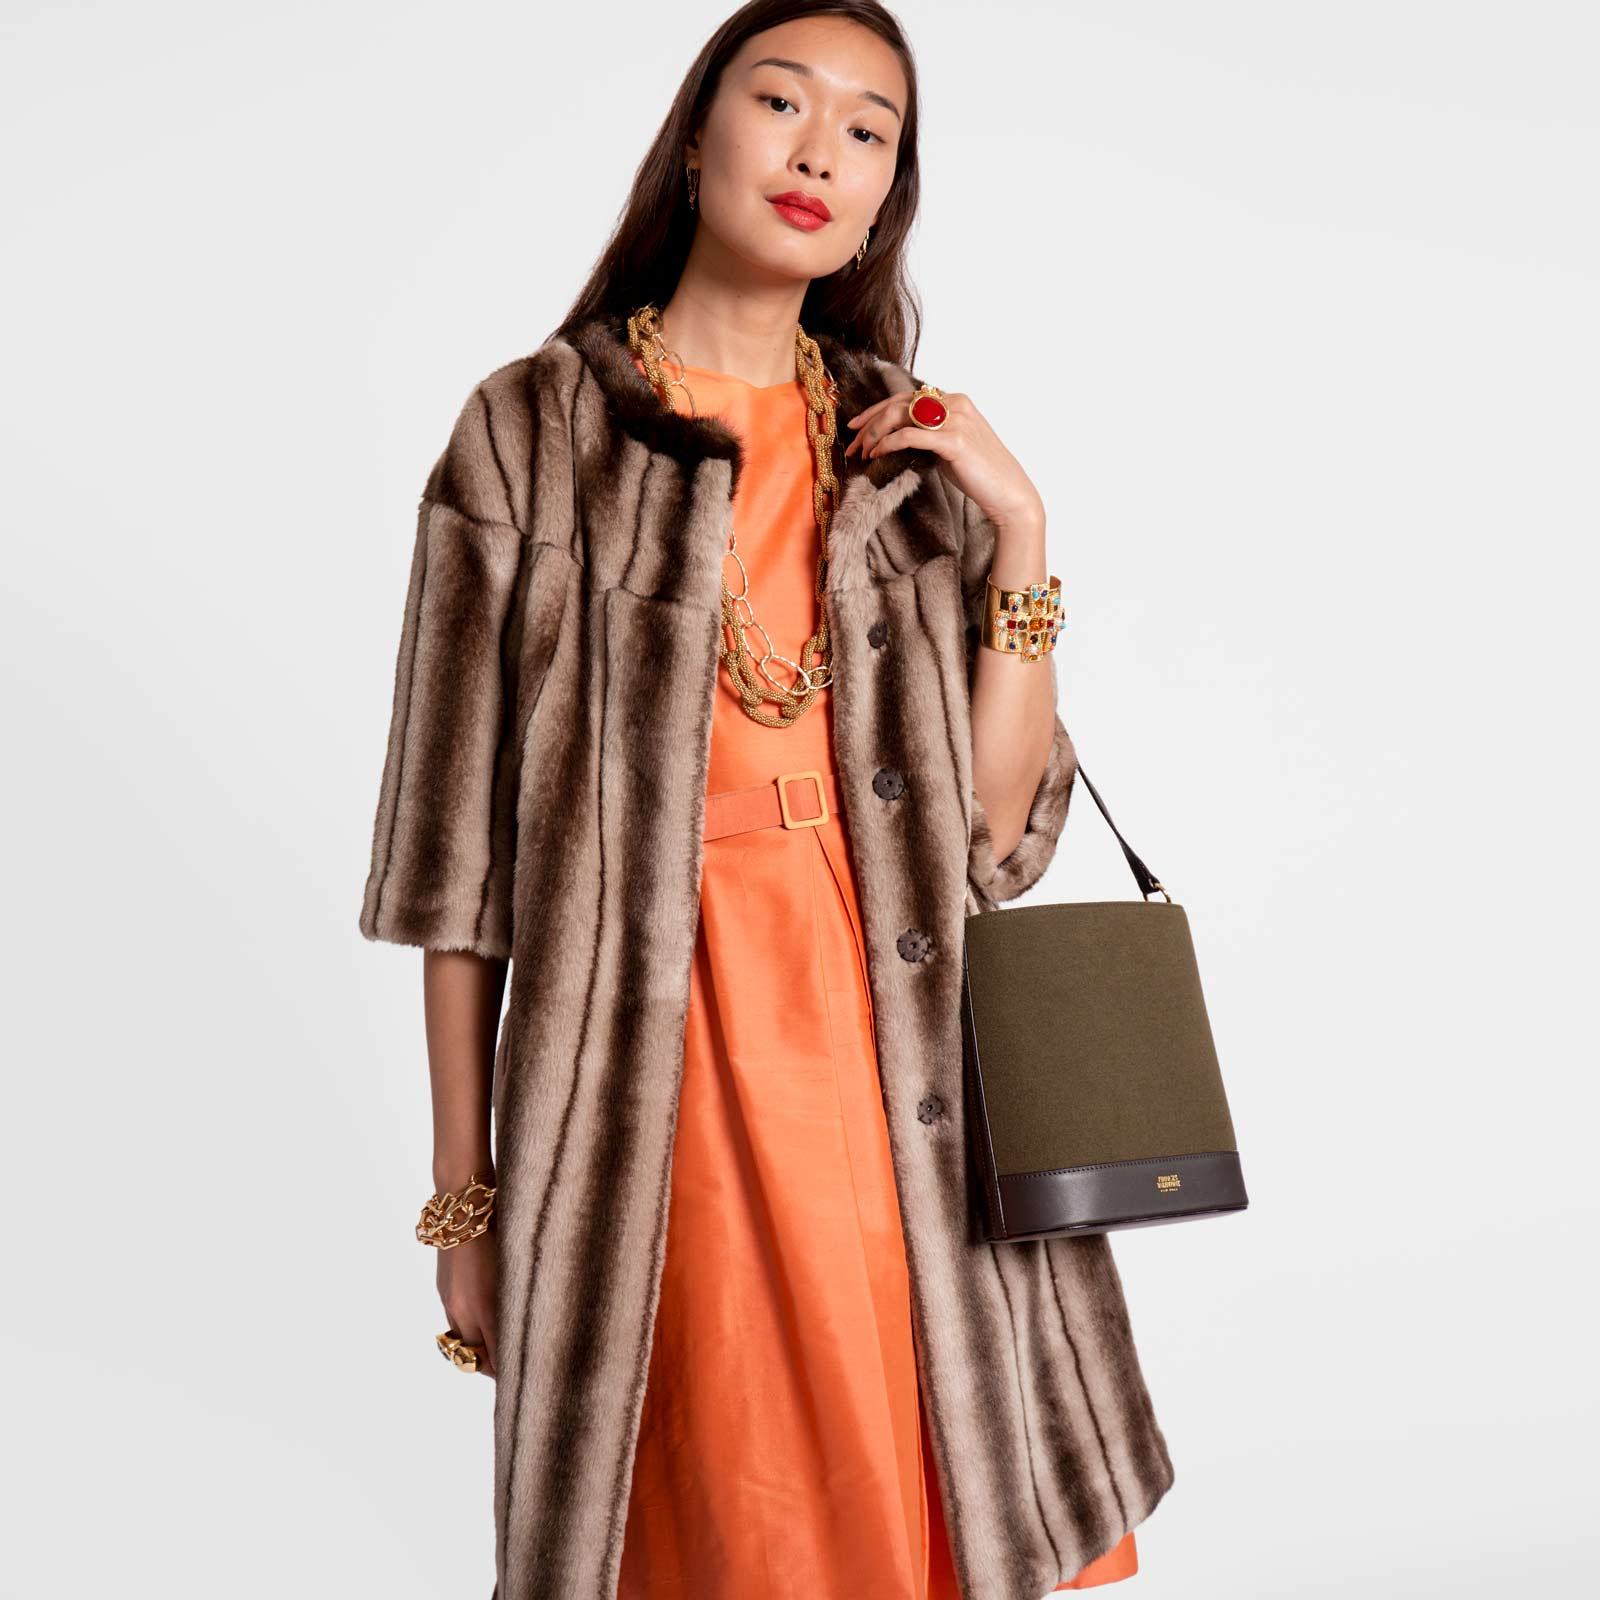 Long Faux Fur Jacket Mink - Frances Valentine